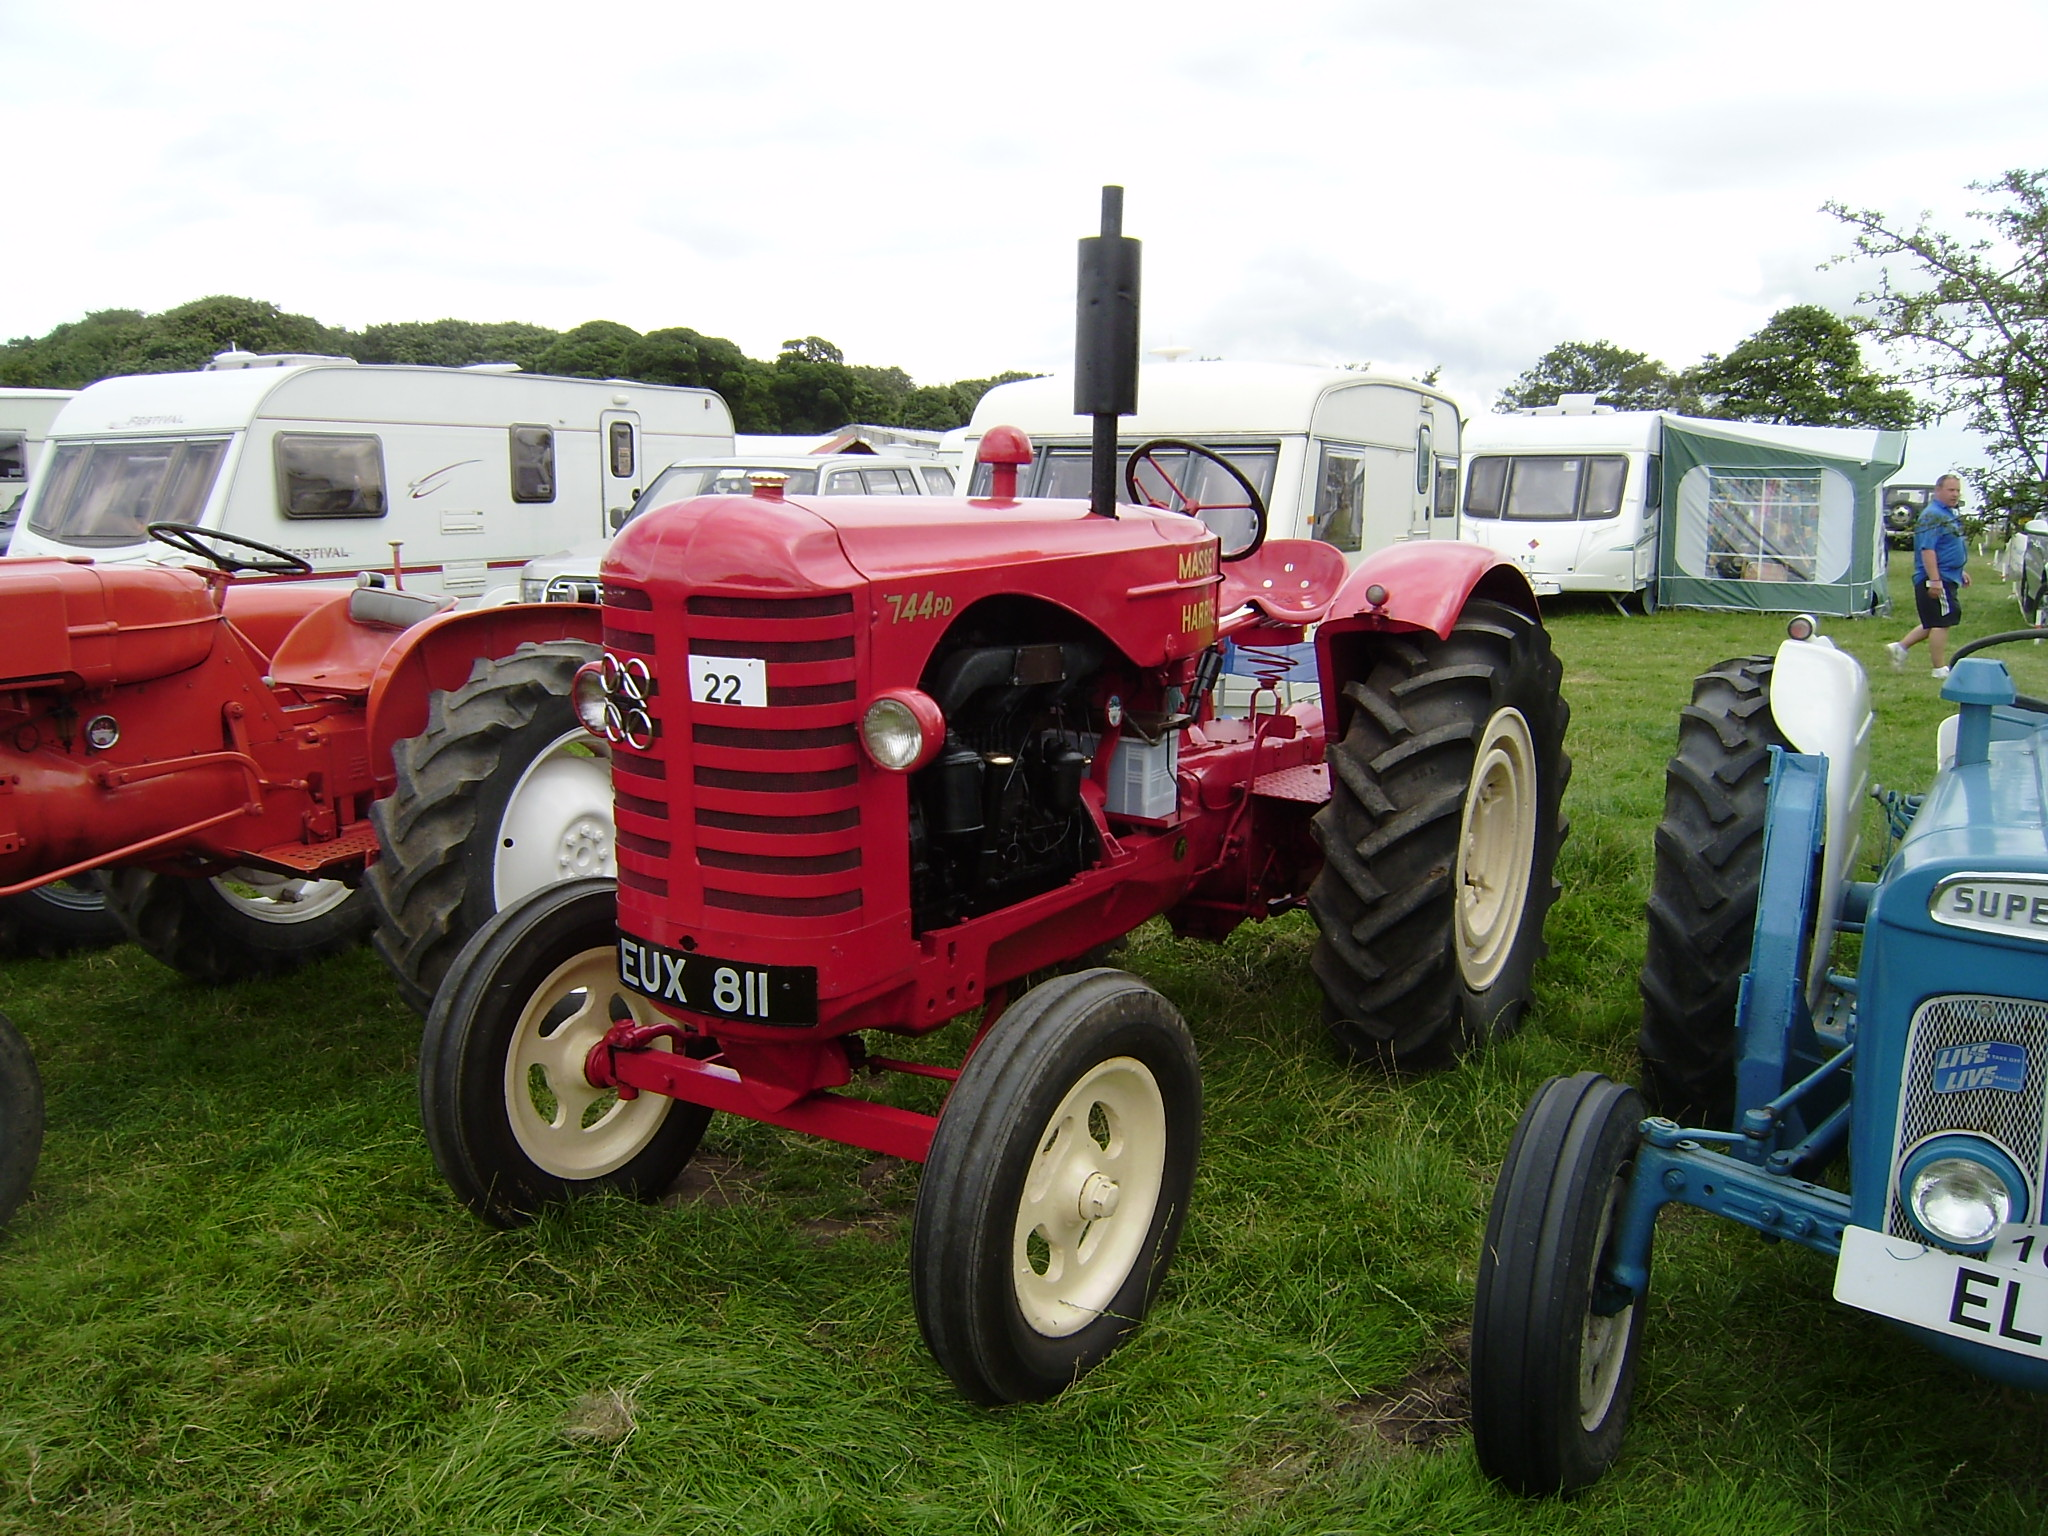 Tickets Available For Fundraiser Featuring Sarah Palin together with JDS1910 6 Volt Fuel Gauge together with Tractor Story 1950 Oliver 66 also IHS417 Carburetor Zenith further T20141110 11340574. on massey harris parts